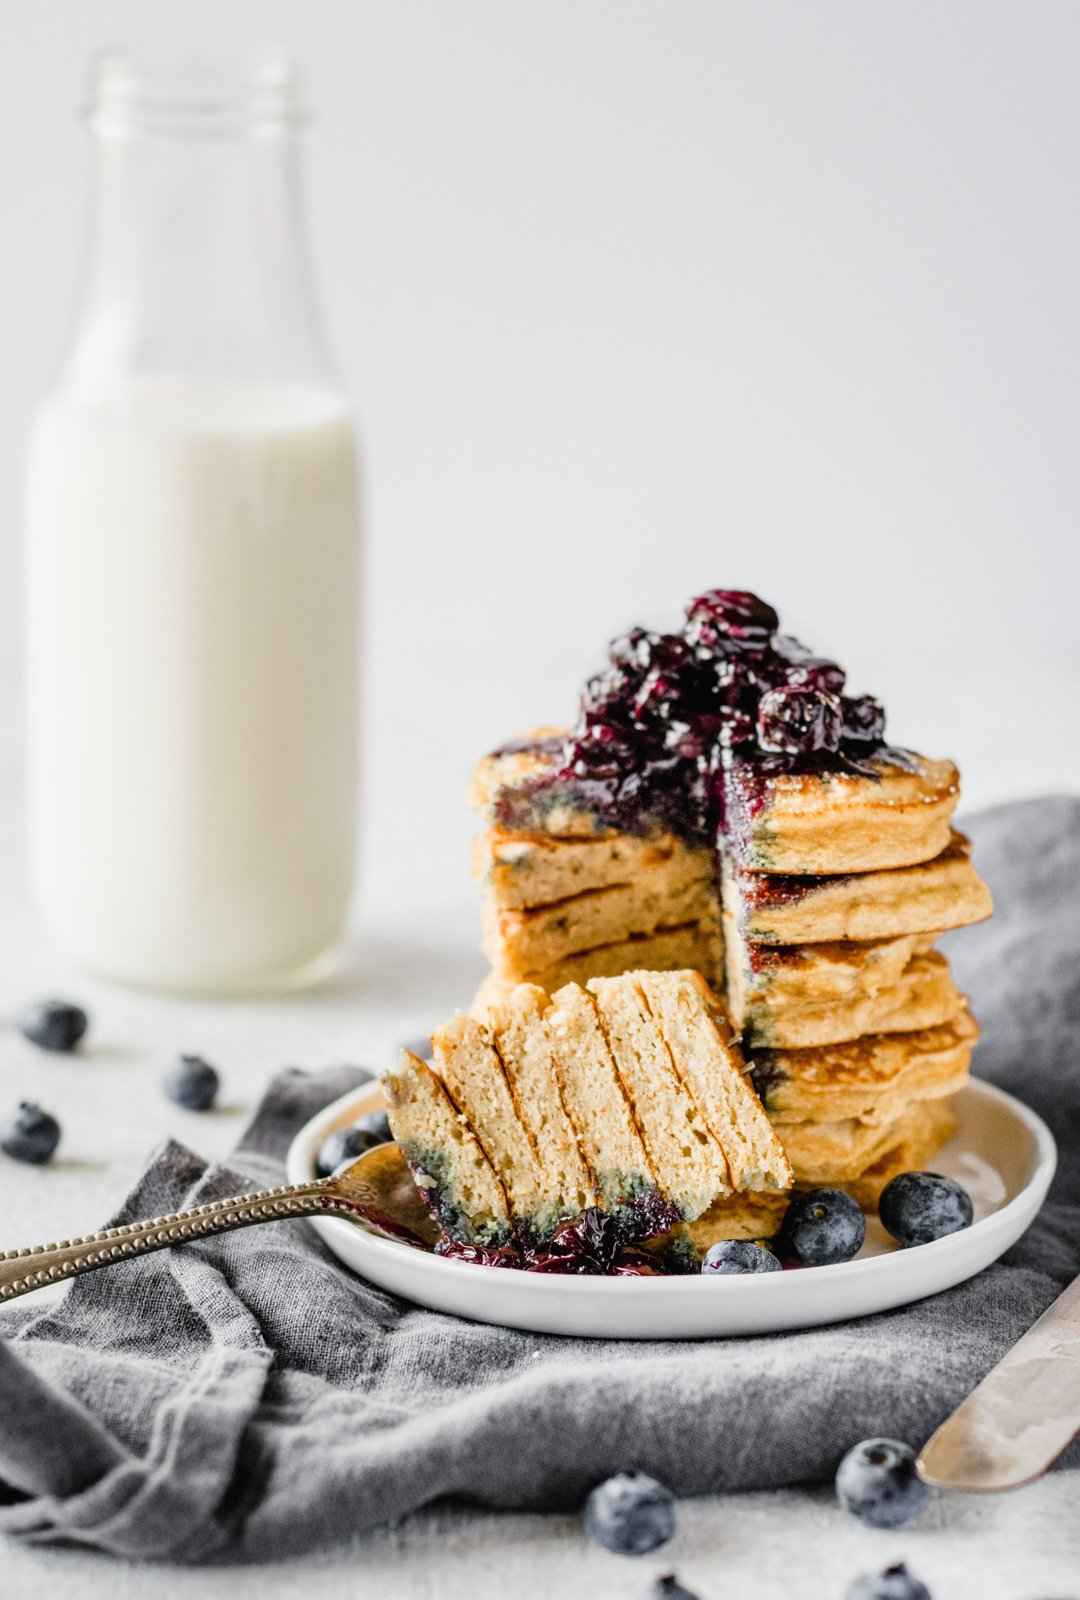 stack of dairy free coconut flour pancakes with blueberry syrup and a bottle of milk in the background